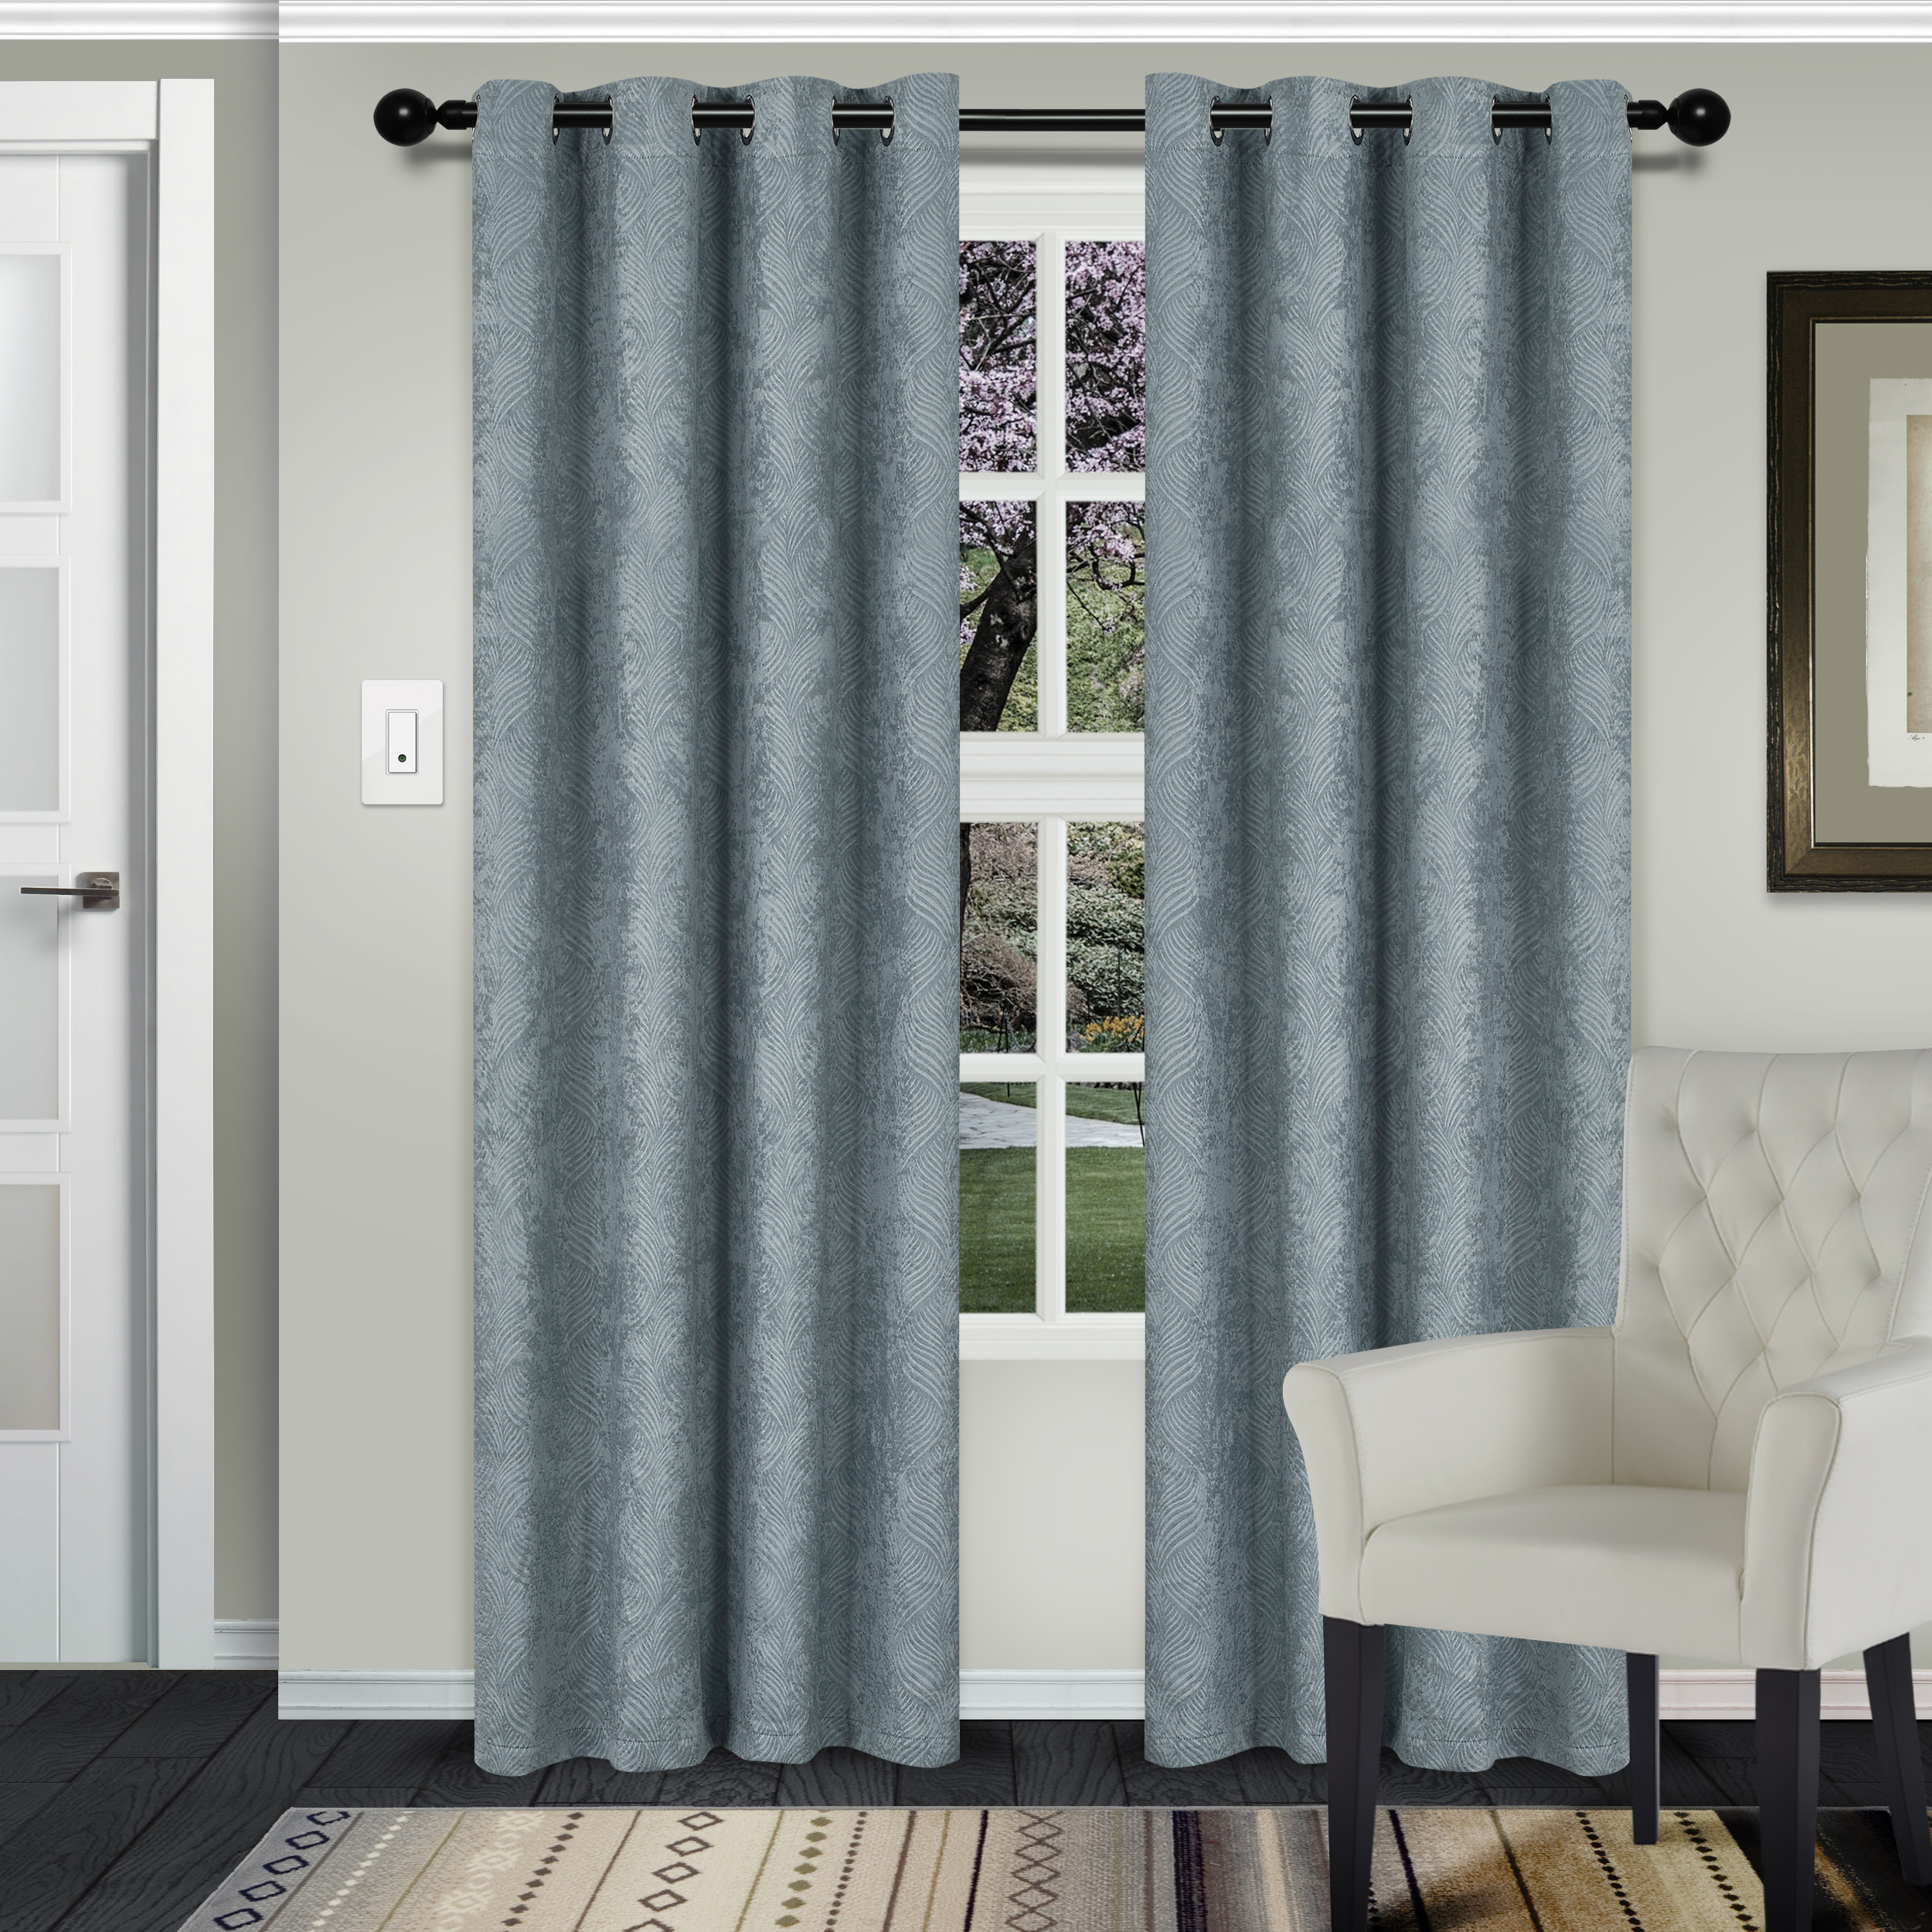 Superior Waverly Textured Blackout Curtain Set Of 2, Thermal Intended For Thermal Insulated Blackout Curtain Pairs (View 18 of 30)